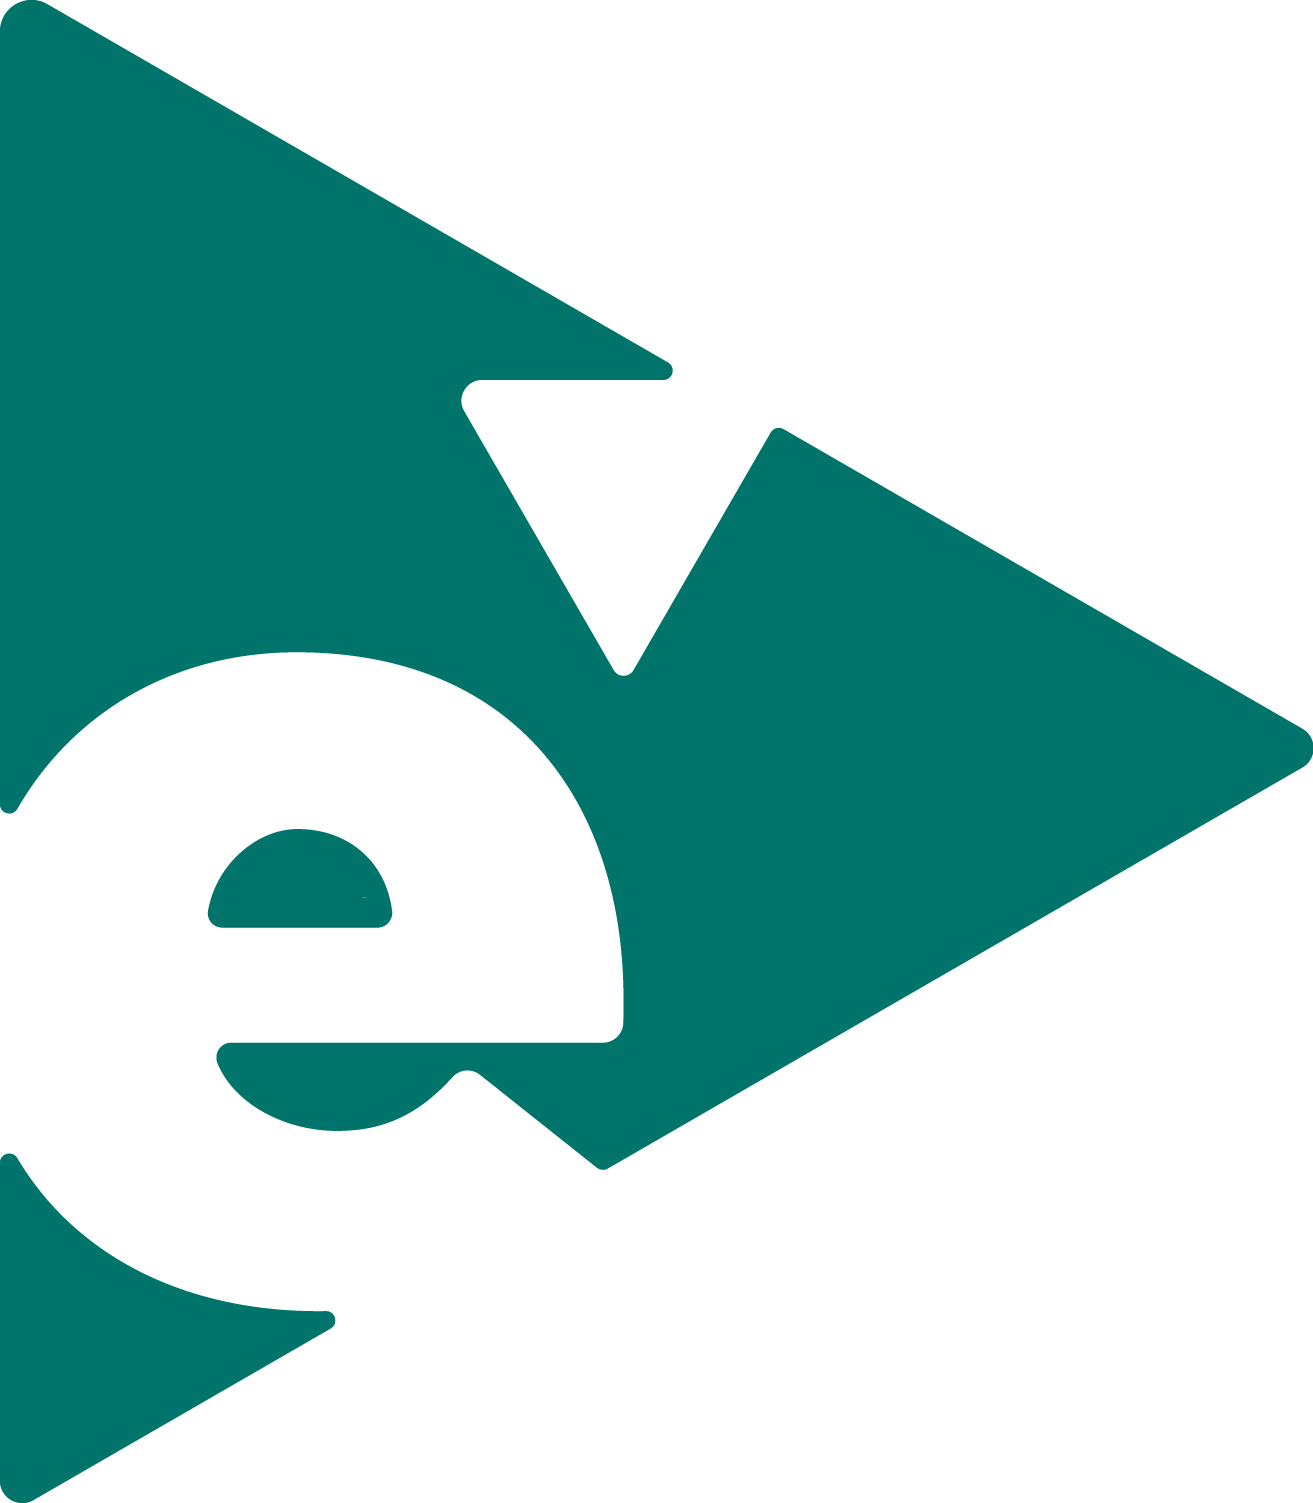 Eclat Impact Delta logo Mark only Teal_RGB_150ppi.jpg